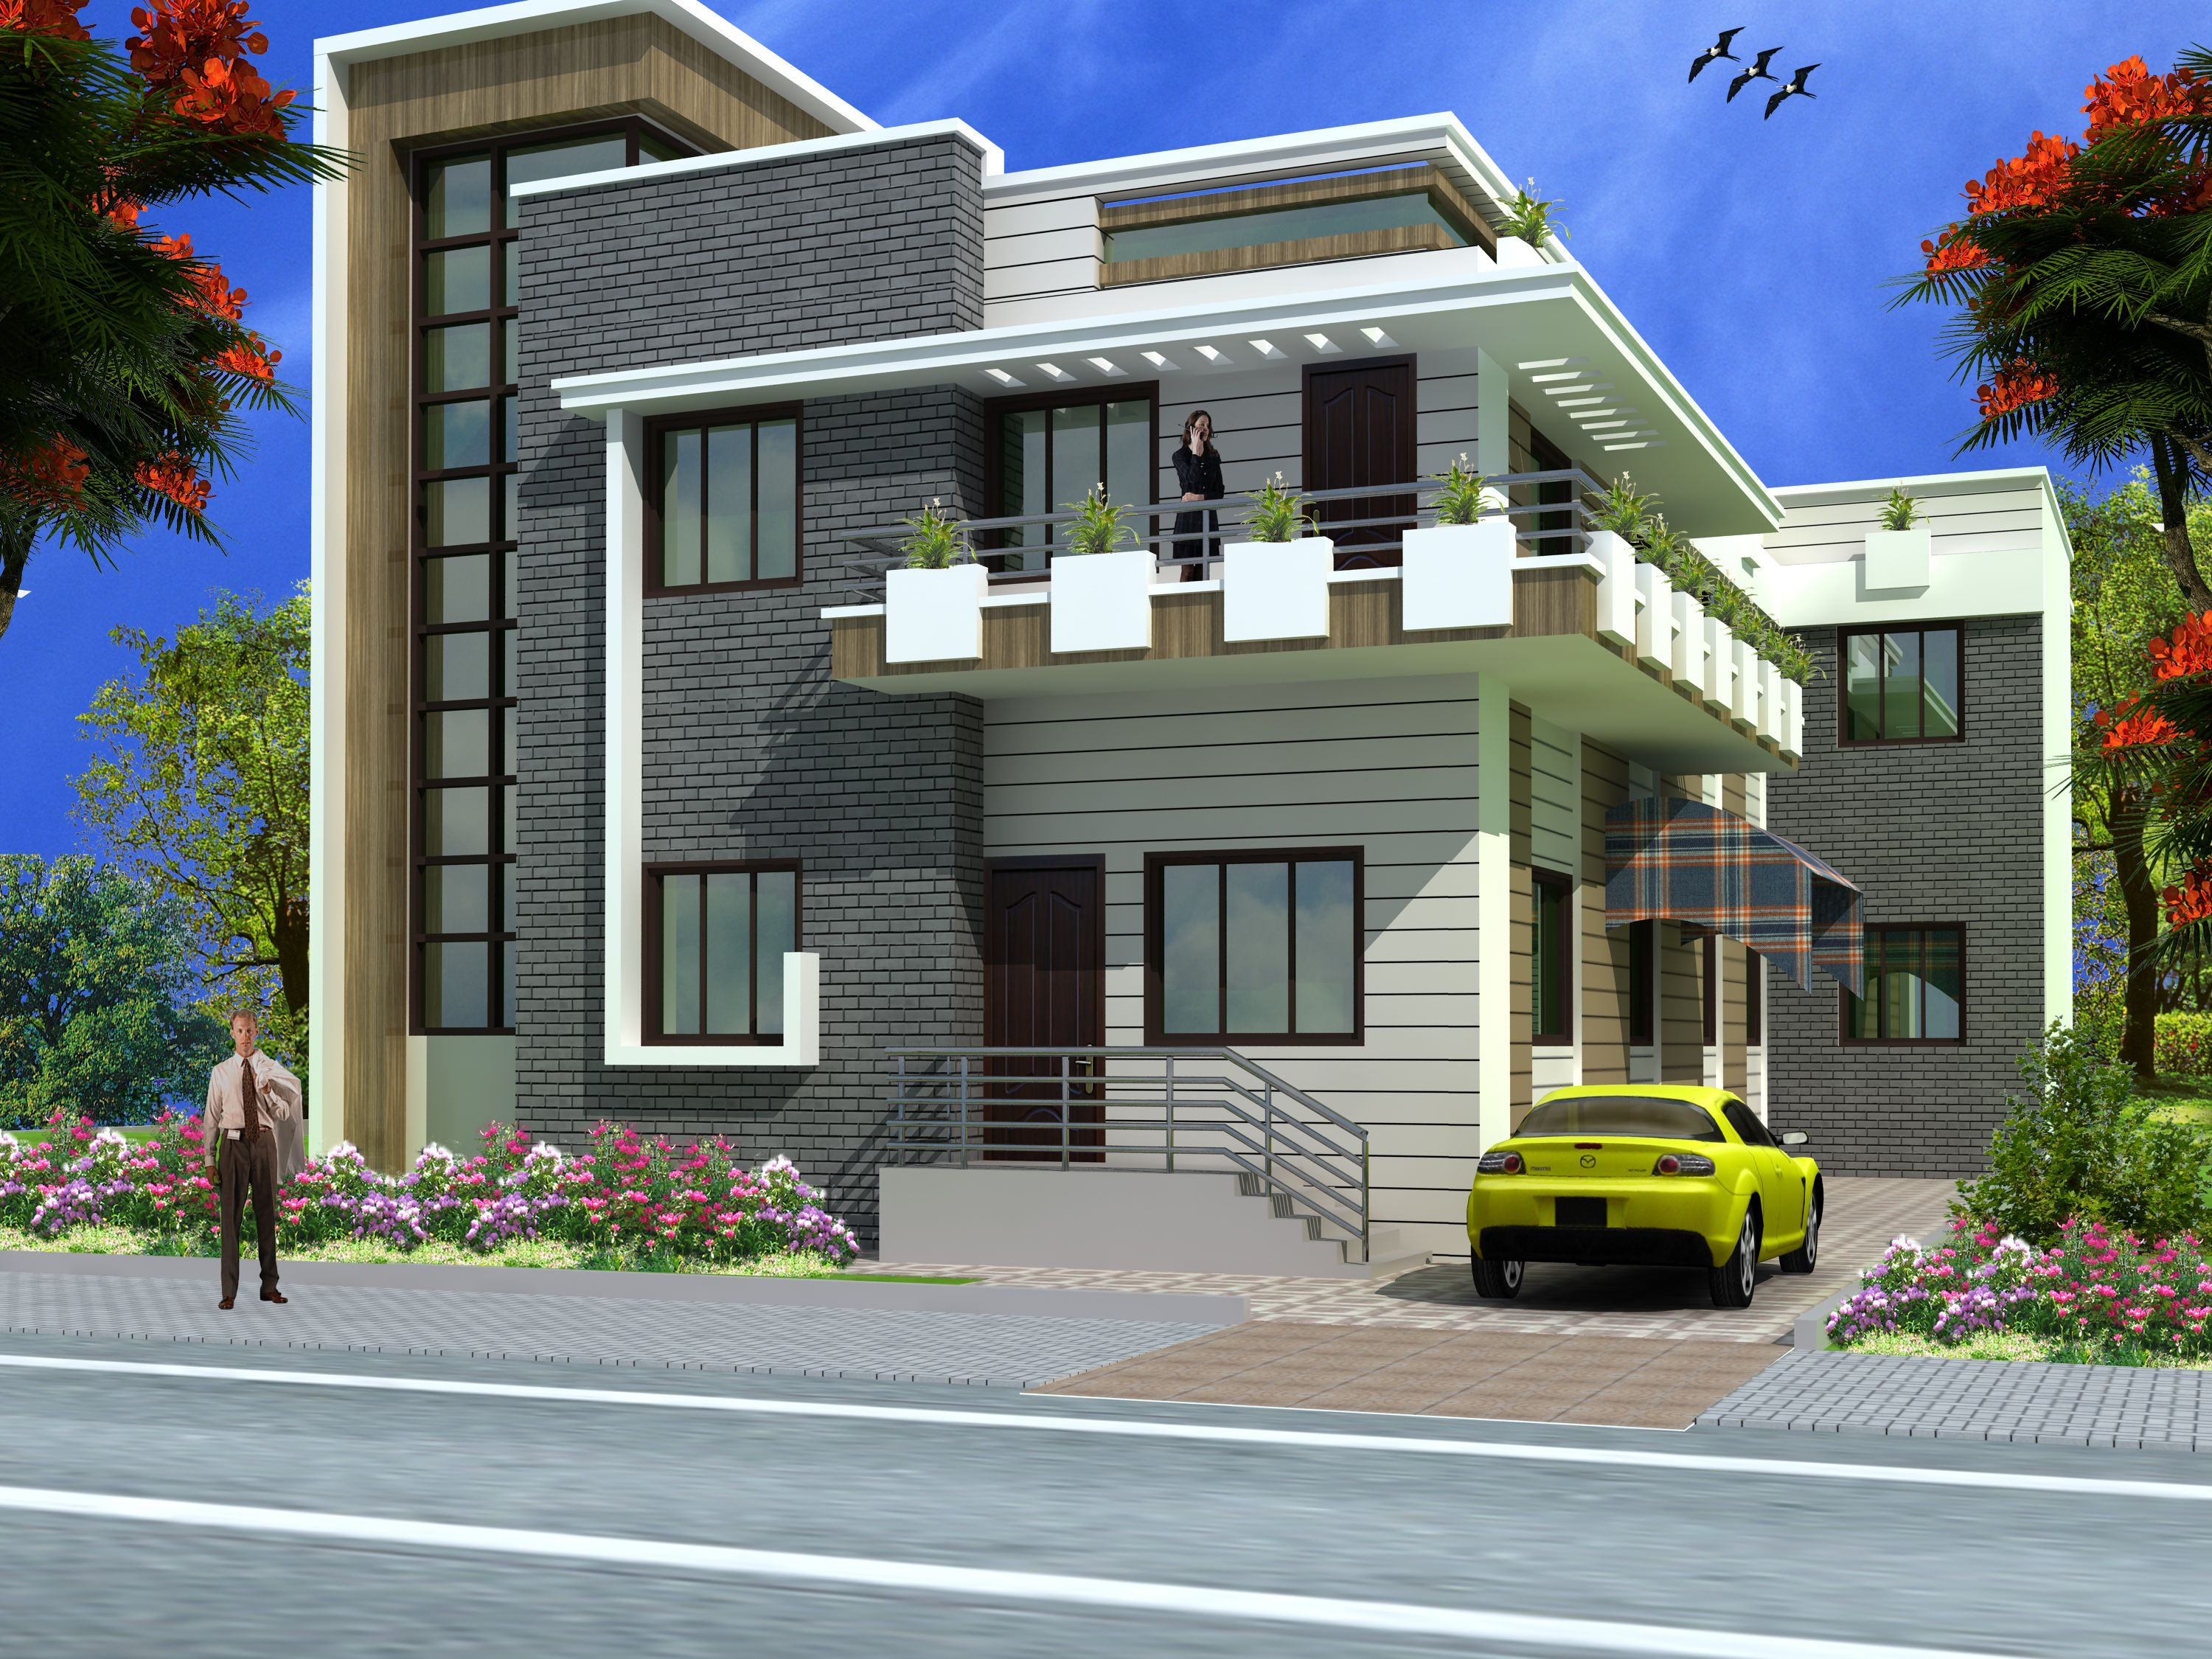 Modern duplex 2 floor house design click on this link for Design duplex house architecture india